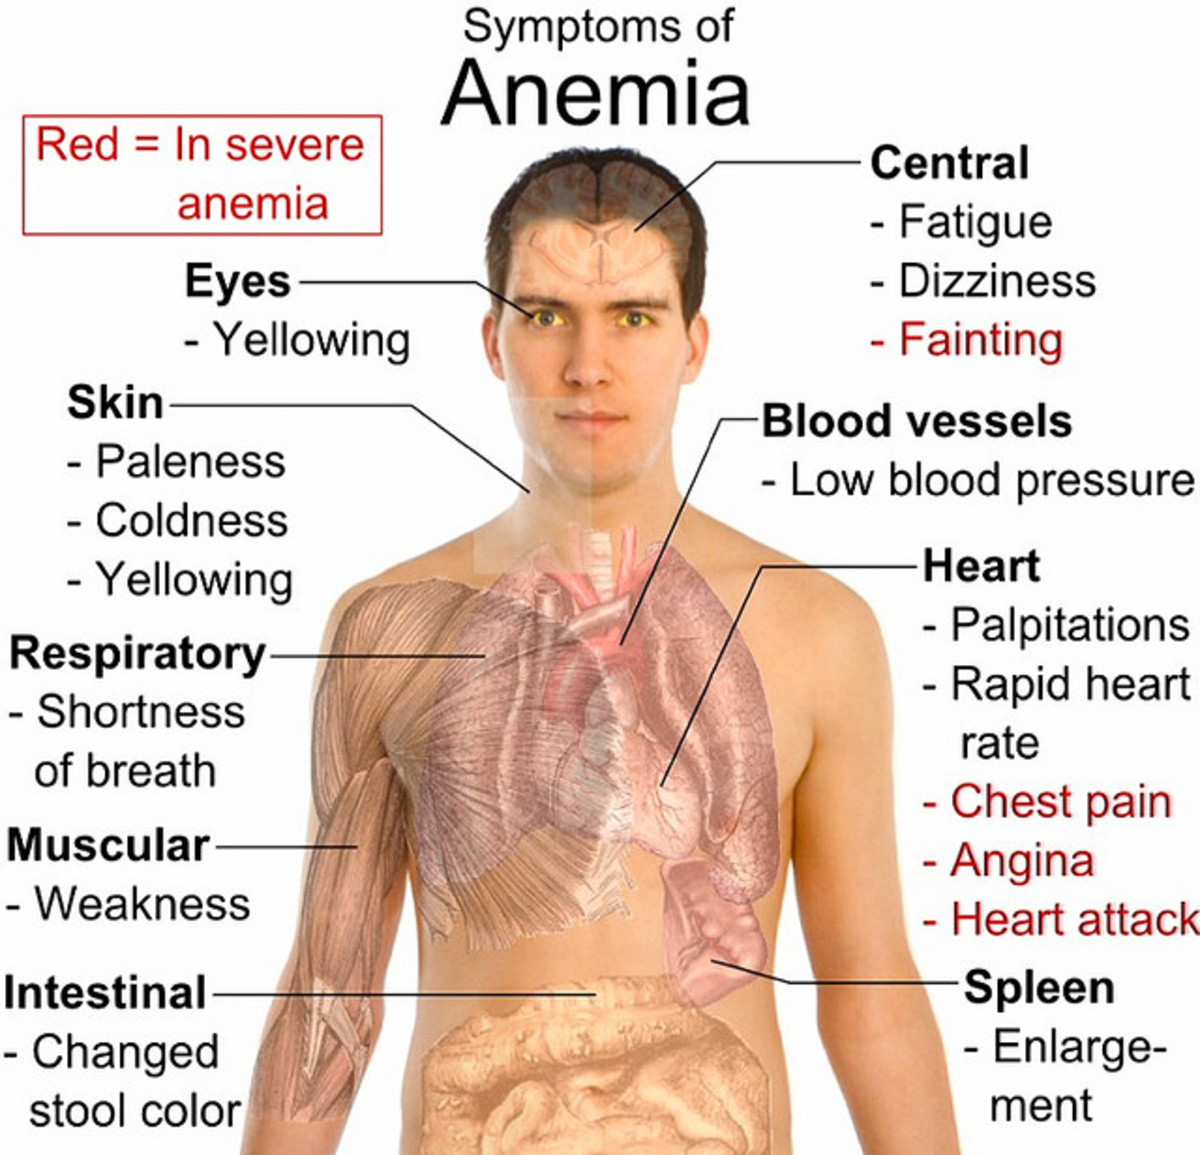 Common symptoms of anemia.